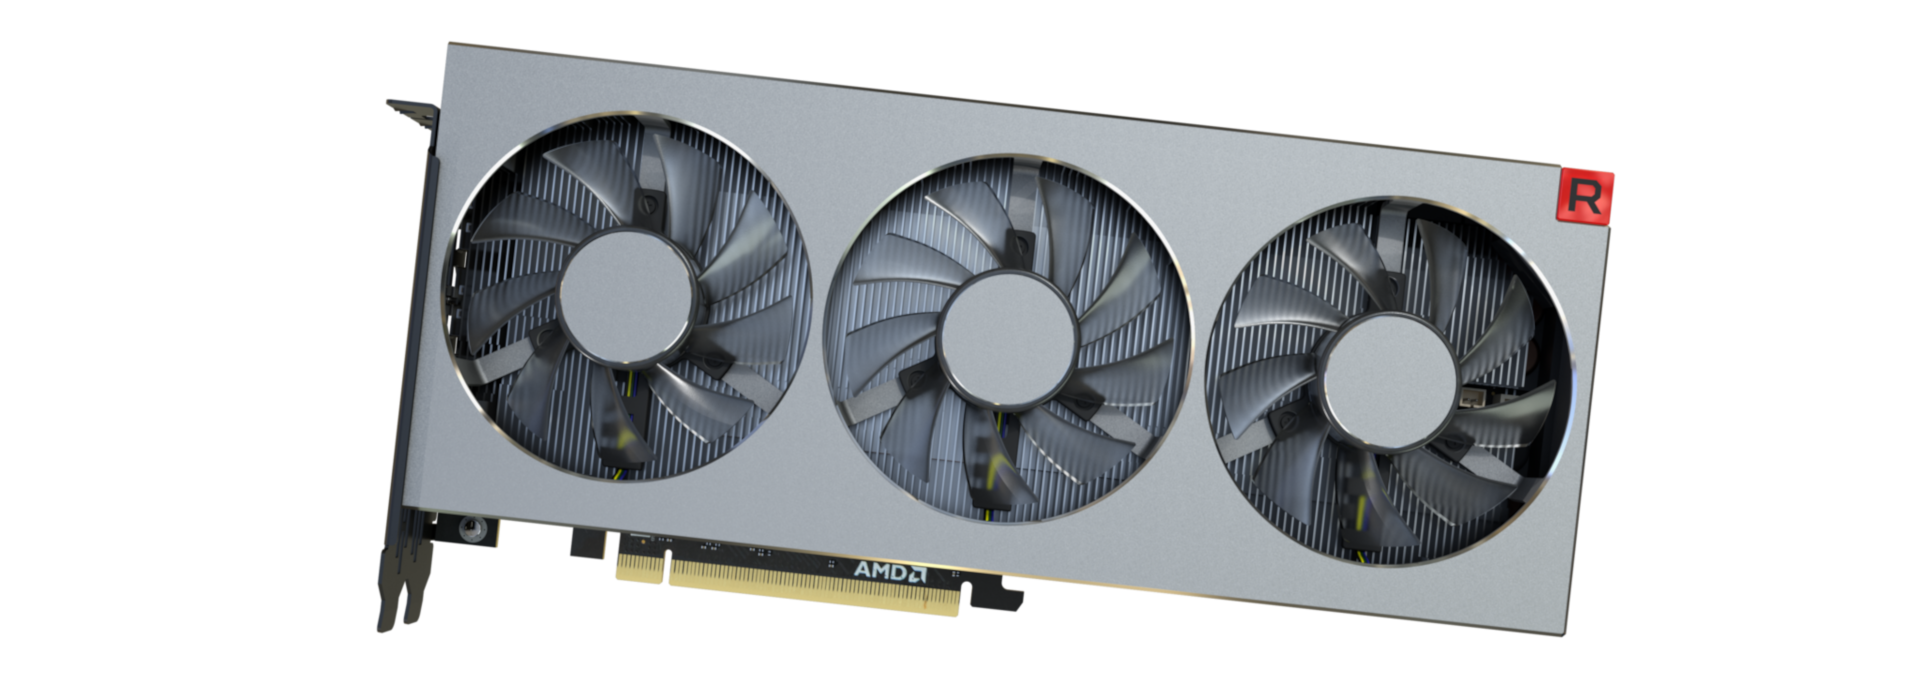 AMD have announced the AMD Radeon VII GPU and more at CES 2019